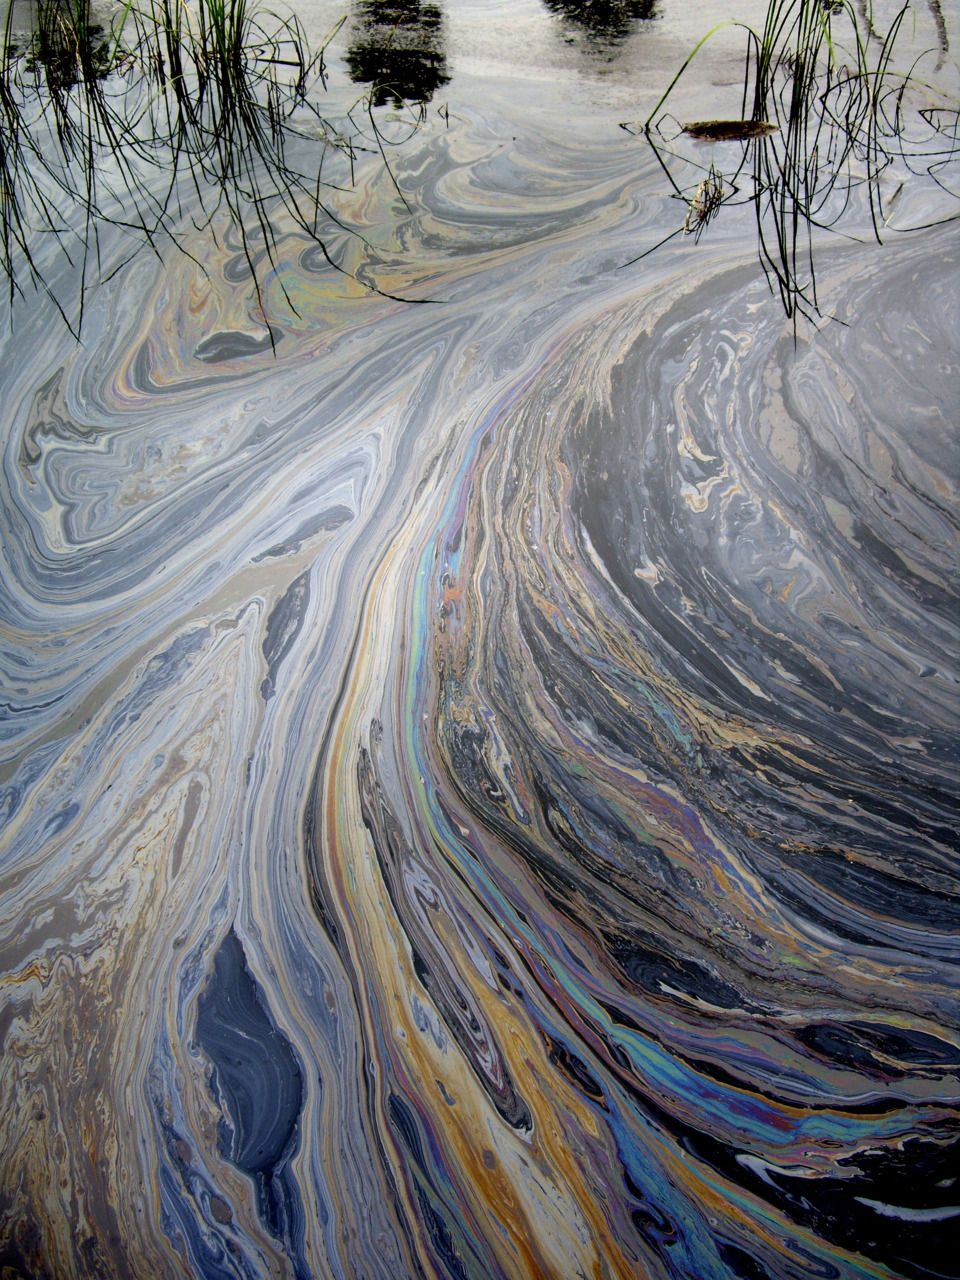 oil on water - incredibly sad and beautiful at the same time.